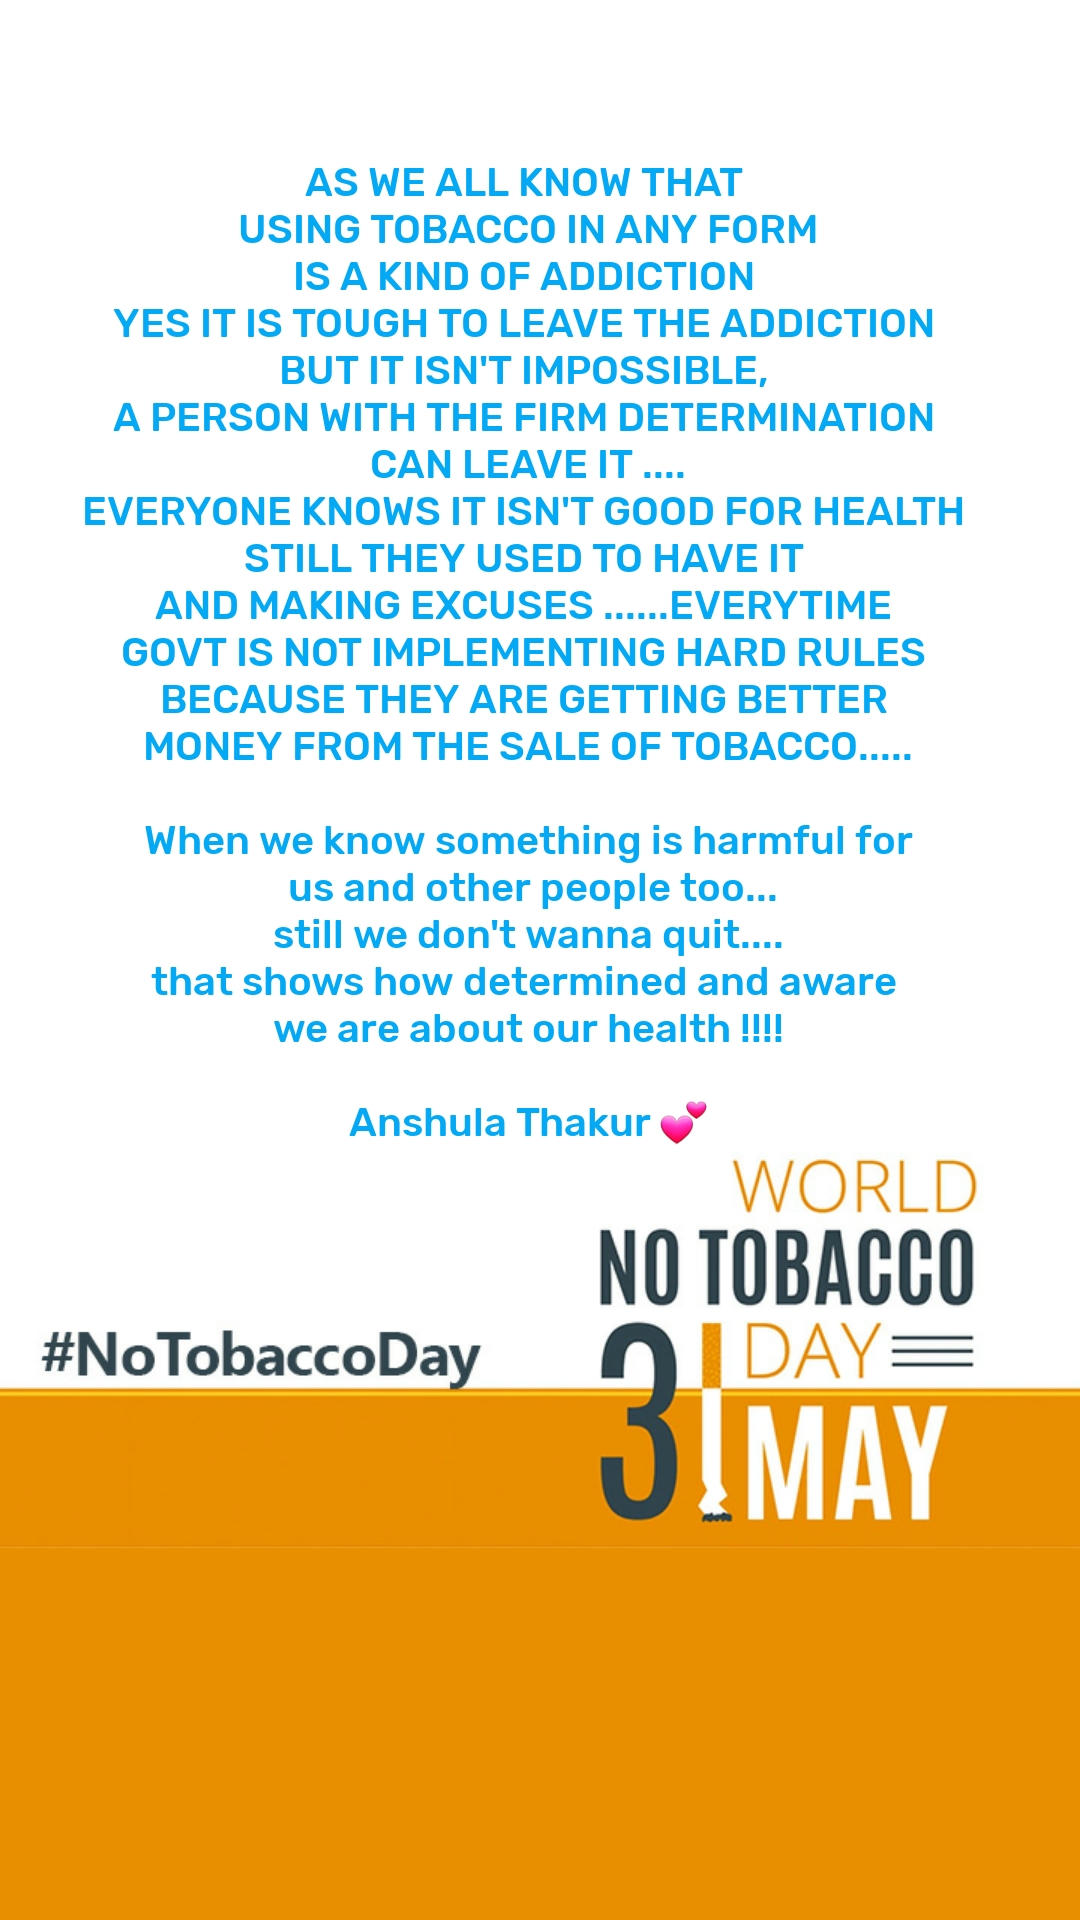 No Tobacco Day  AS WE ALL KNOW THAT  USING TOBACCO IN ANY FORM IS A KIND OF ADDICTION  YES IT IS TOUGH TO LEAVE THE ADDICTION  BUT IT ISN'T IMPOSSIBLE,  A PERSON WITH THE FIRM DETERMINATION  CAN LEAVE IT .... EVERYONE KNOWS IT ISN'T GOOD FOR HEALTH  STILL THEY USED TO HAVE IT  AND MAKING EXCUSES ......EVERYTIME  GOVT IS NOT IMPLEMENTING HARD RULES  BECAUSE THEY ARE GETTING BETTER  MONEY FROM THE SALE OF TOBACCO.....  When we know something is harmful for  us and other people too... still we don't wanna quit.... that shows how determined and aware  we are about our health !!!!  Anshula Thakur 💕